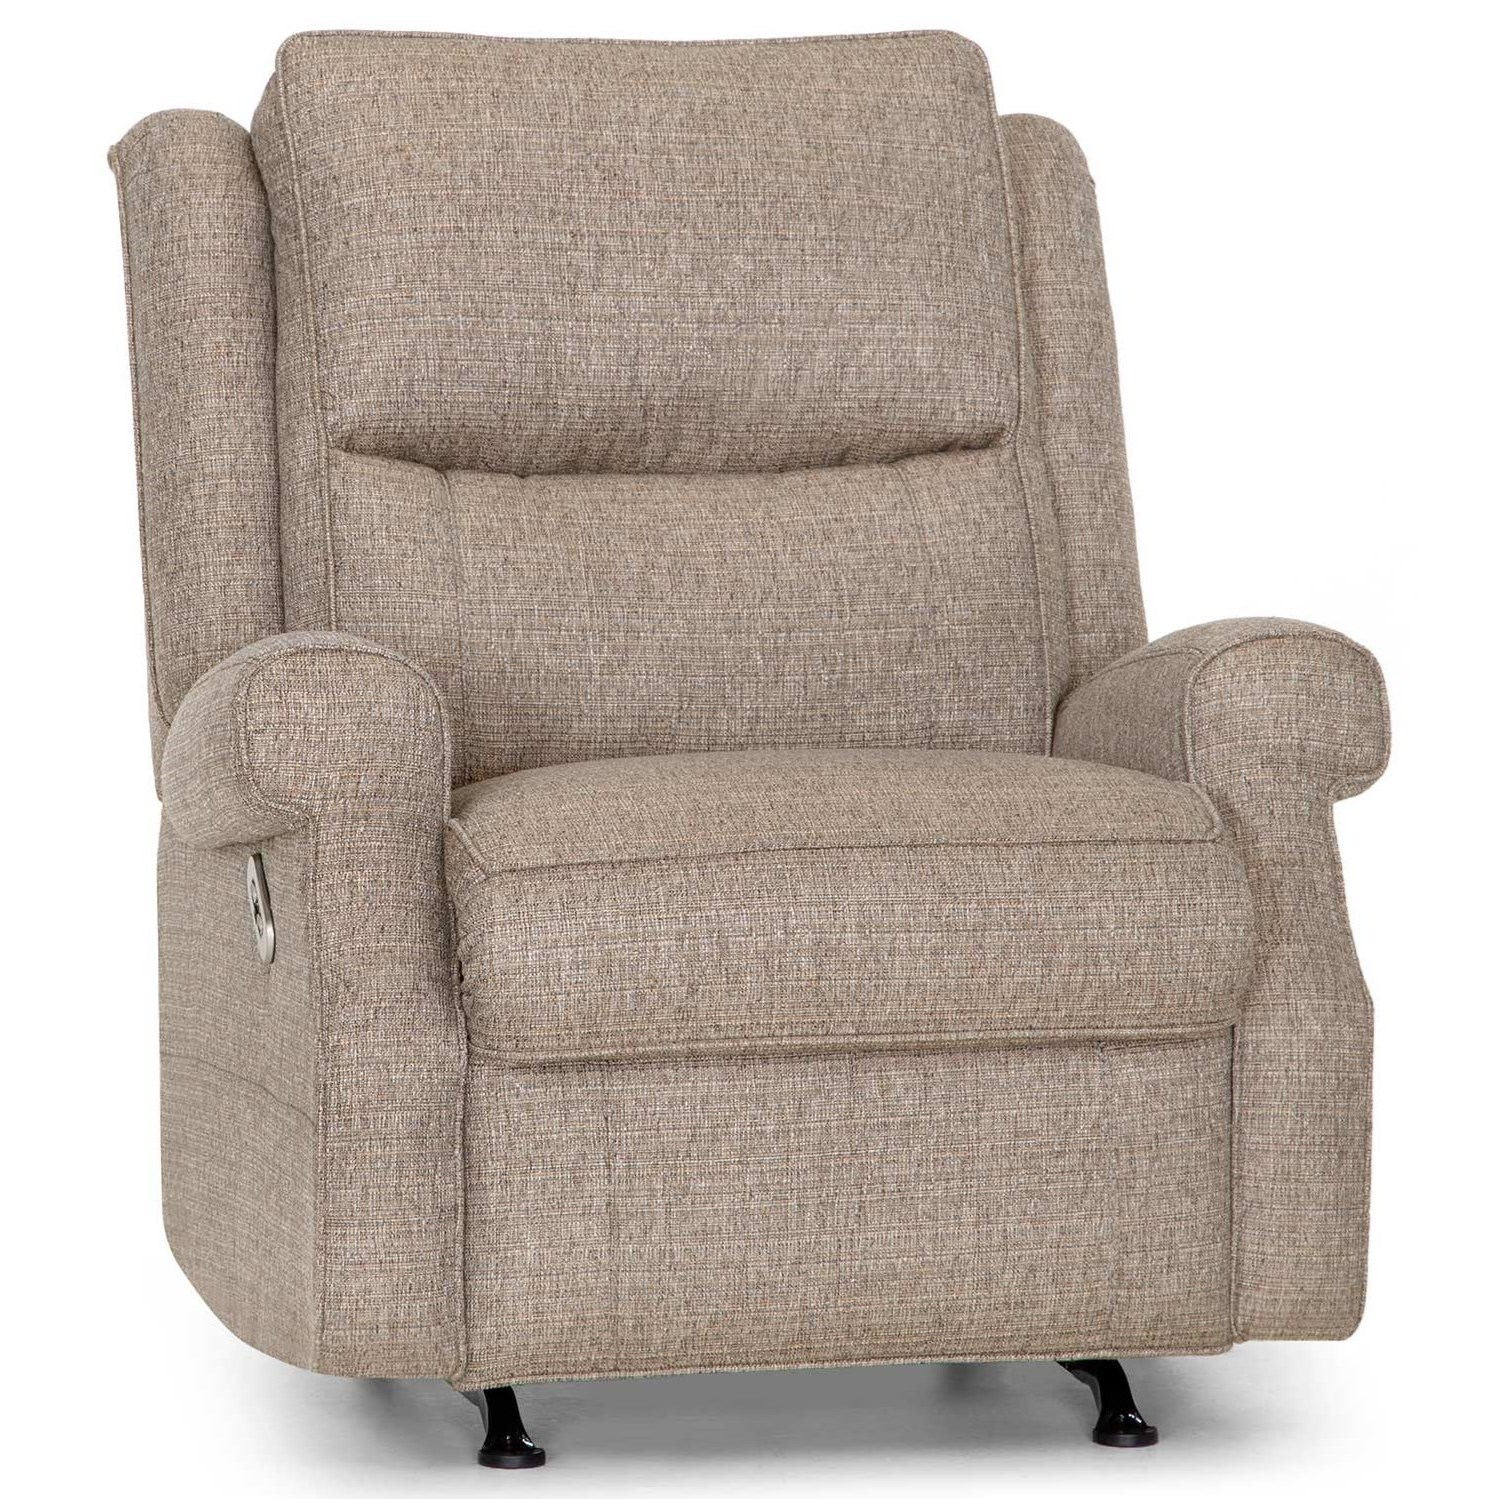 Windham Dual Power Rocker Recliner with USB Port by Franklin at Catalog Outlet